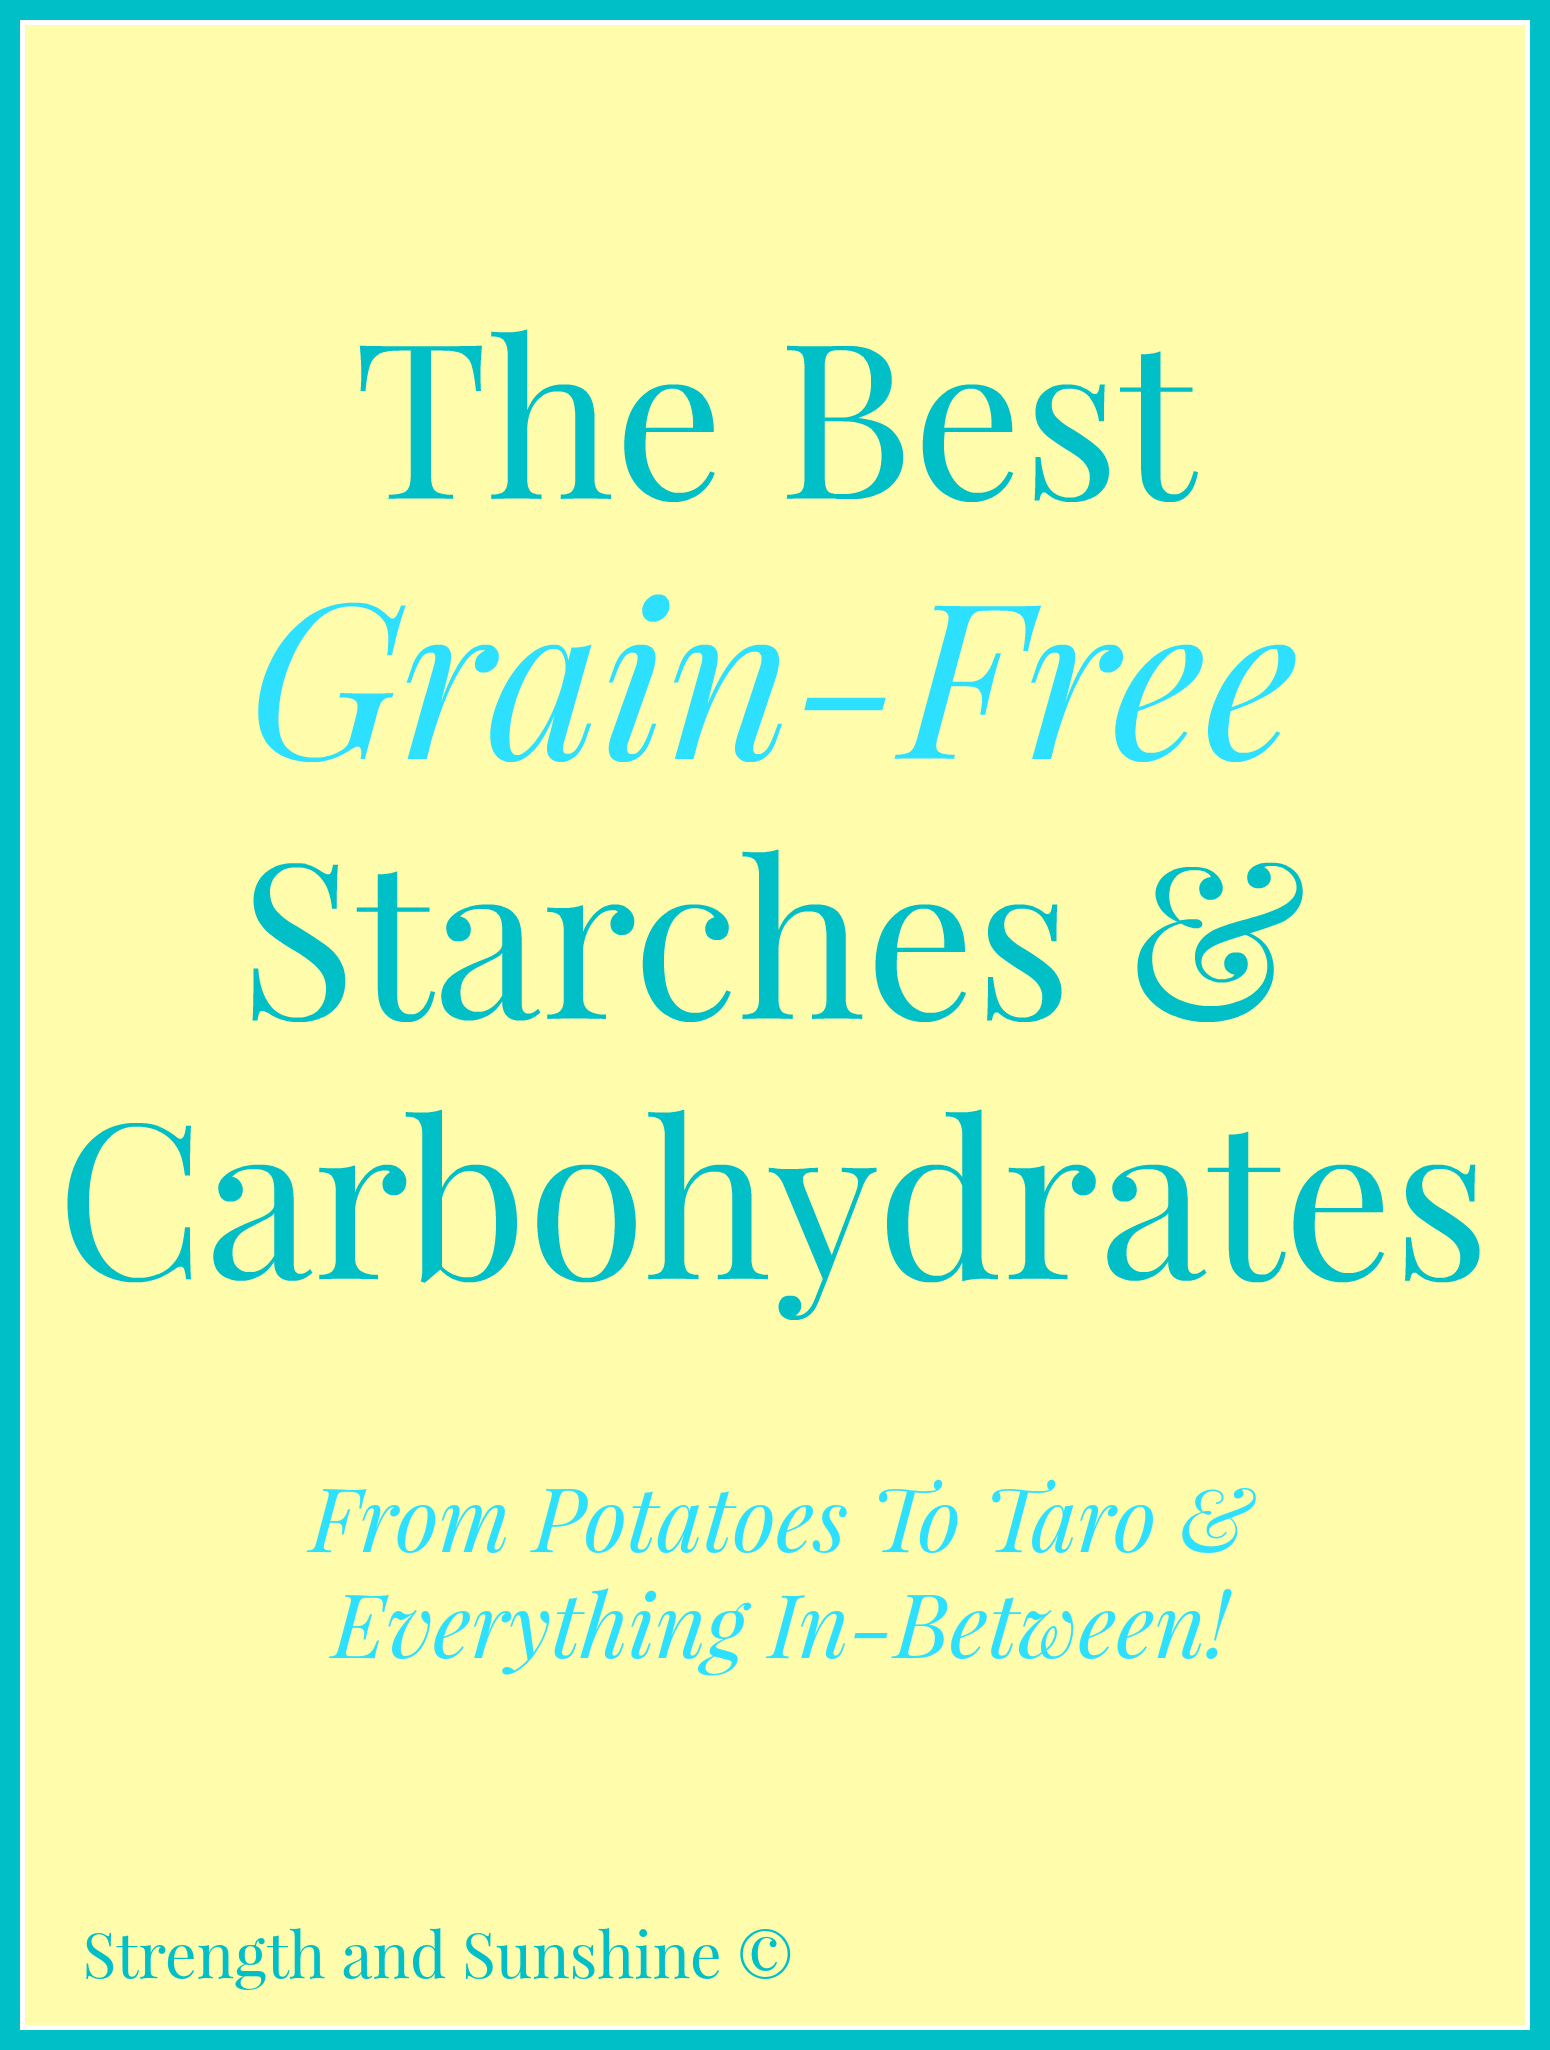 The Best Grain-Free Starches & Carbohydrates | Strength and Sunshine @RebeccaGF666 #grainfree #glutenfree #paleo #food #starches #carbohydrates